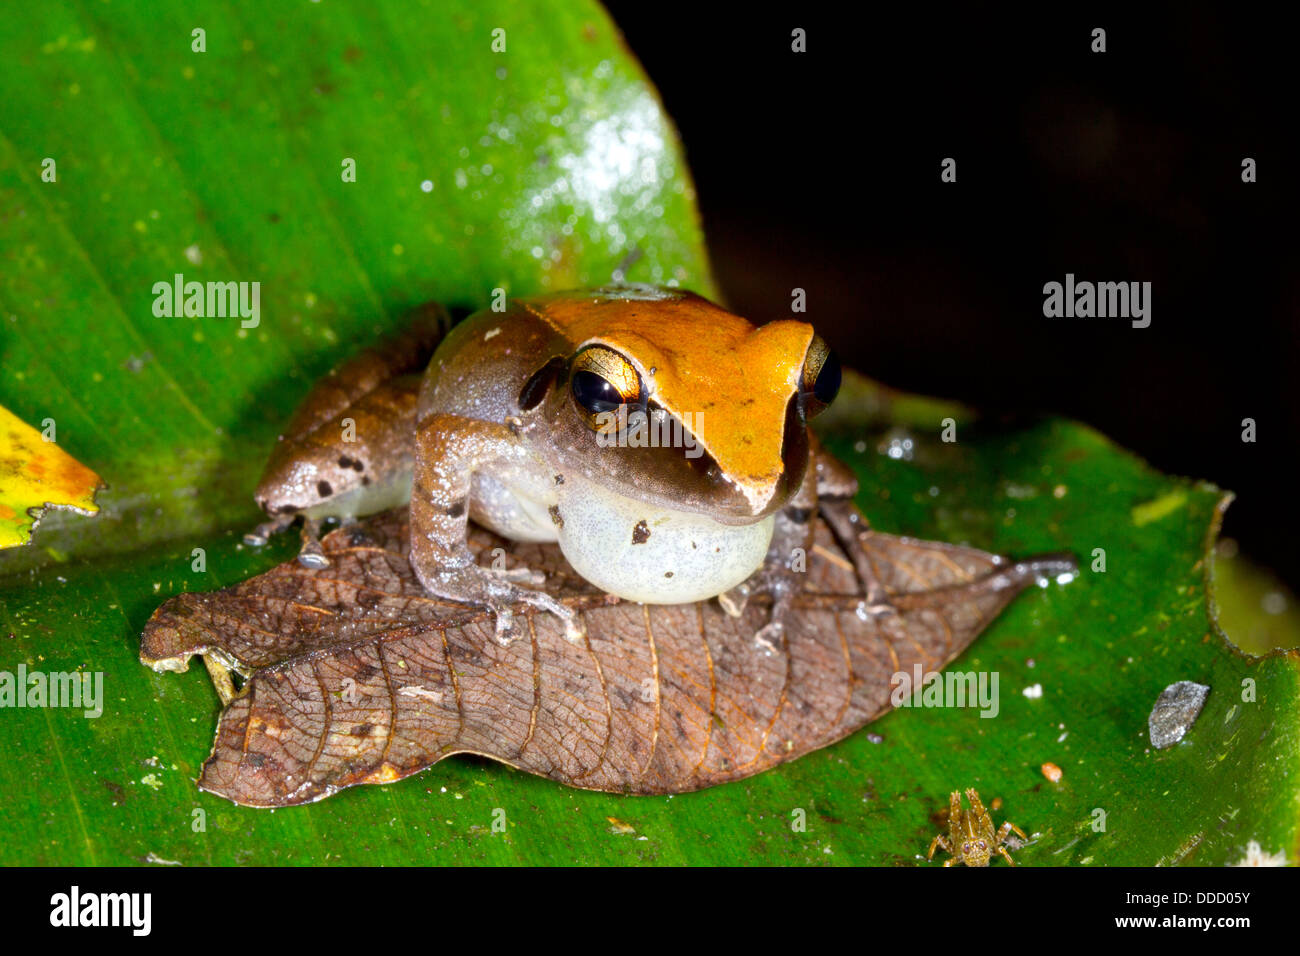 Peruvian Rain Frog (Pristimantis peruvianus) Male with inflated vocal sac looks at small grasshopper, Ecuador - Stock Image